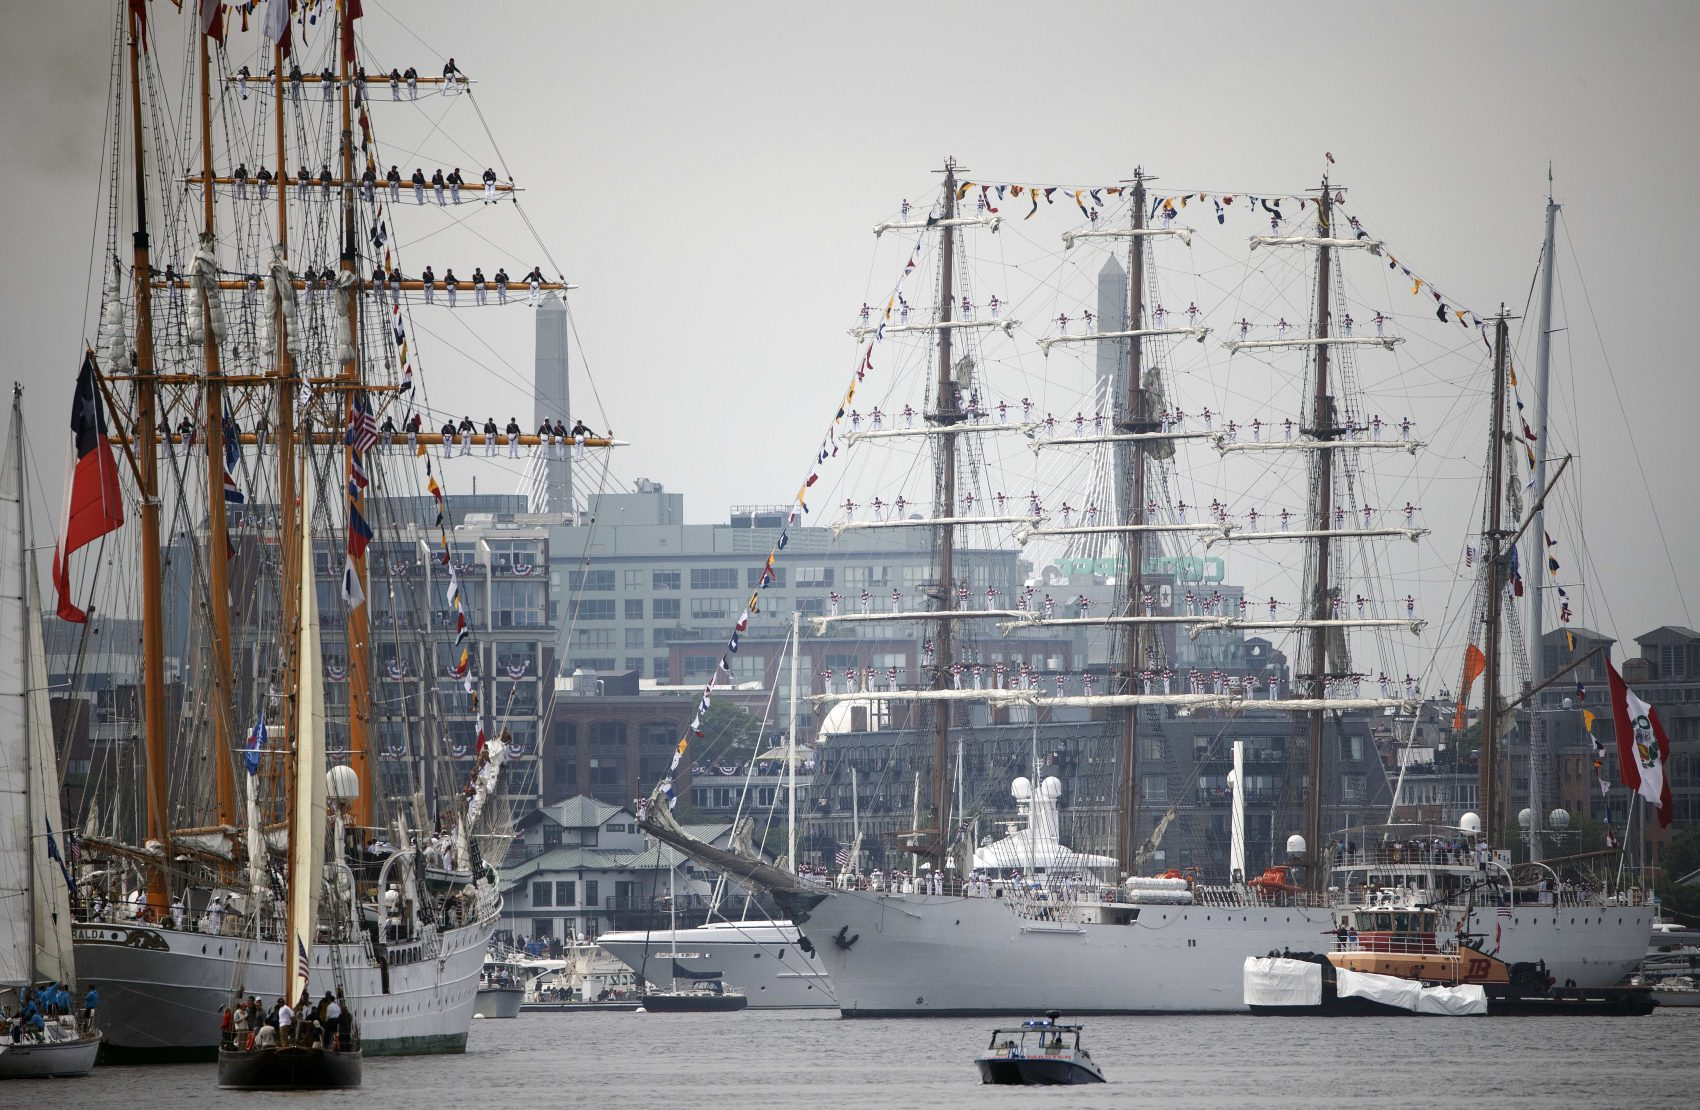 The Peruvian Navy tall ship Union, center, turns around in the inner harbor in front of the Chilean Navy tall ship Esmerelda, left, during Sail Boston's Parade of Sail. (Michael Dwyer/AP)